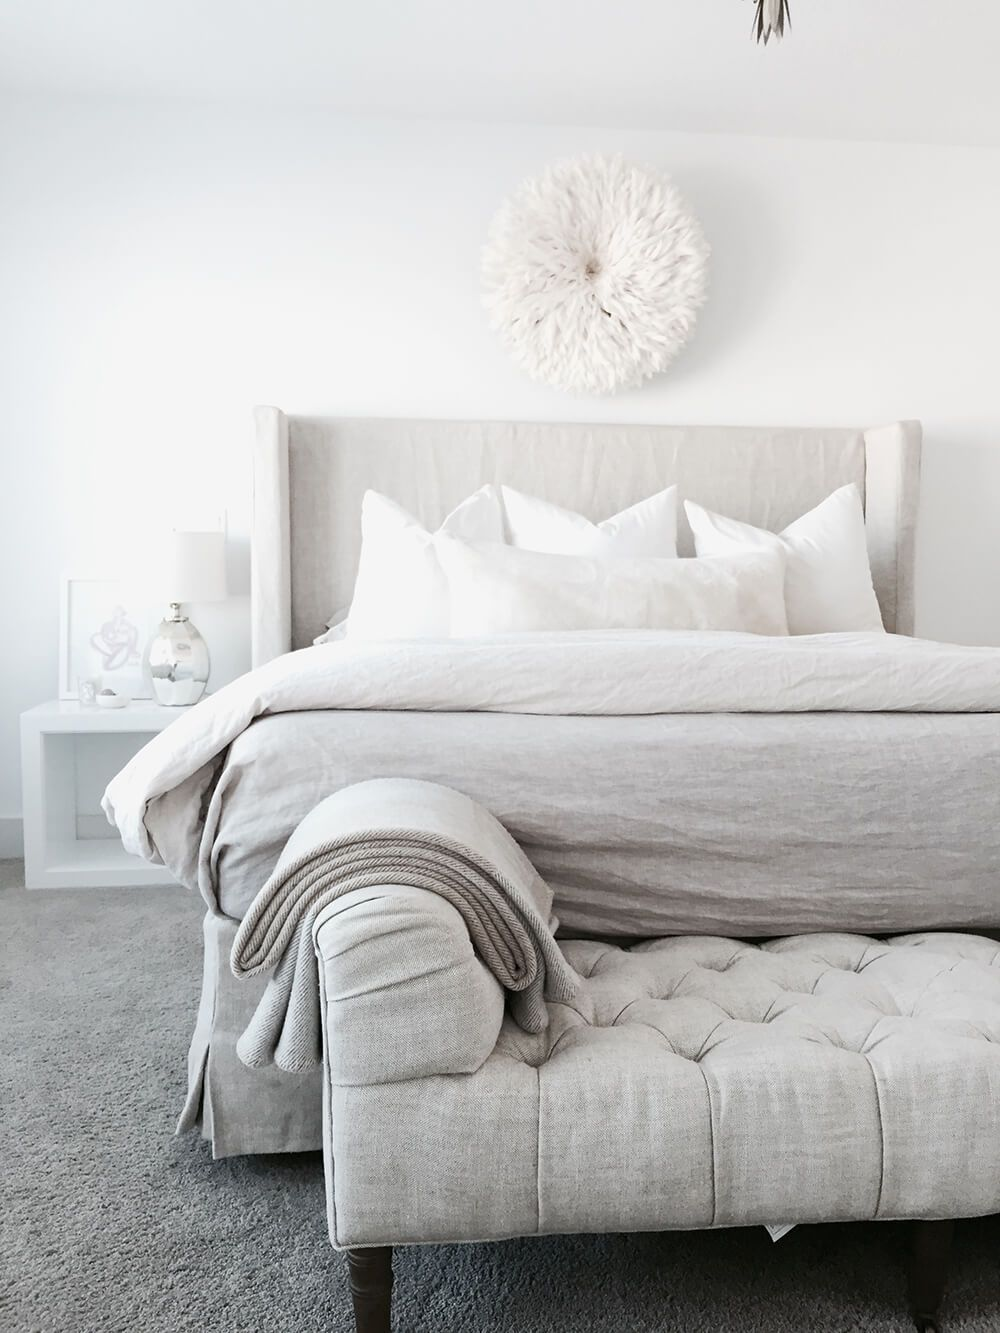 End of Bed Benches (Emily Henderson) | Pinterest ...